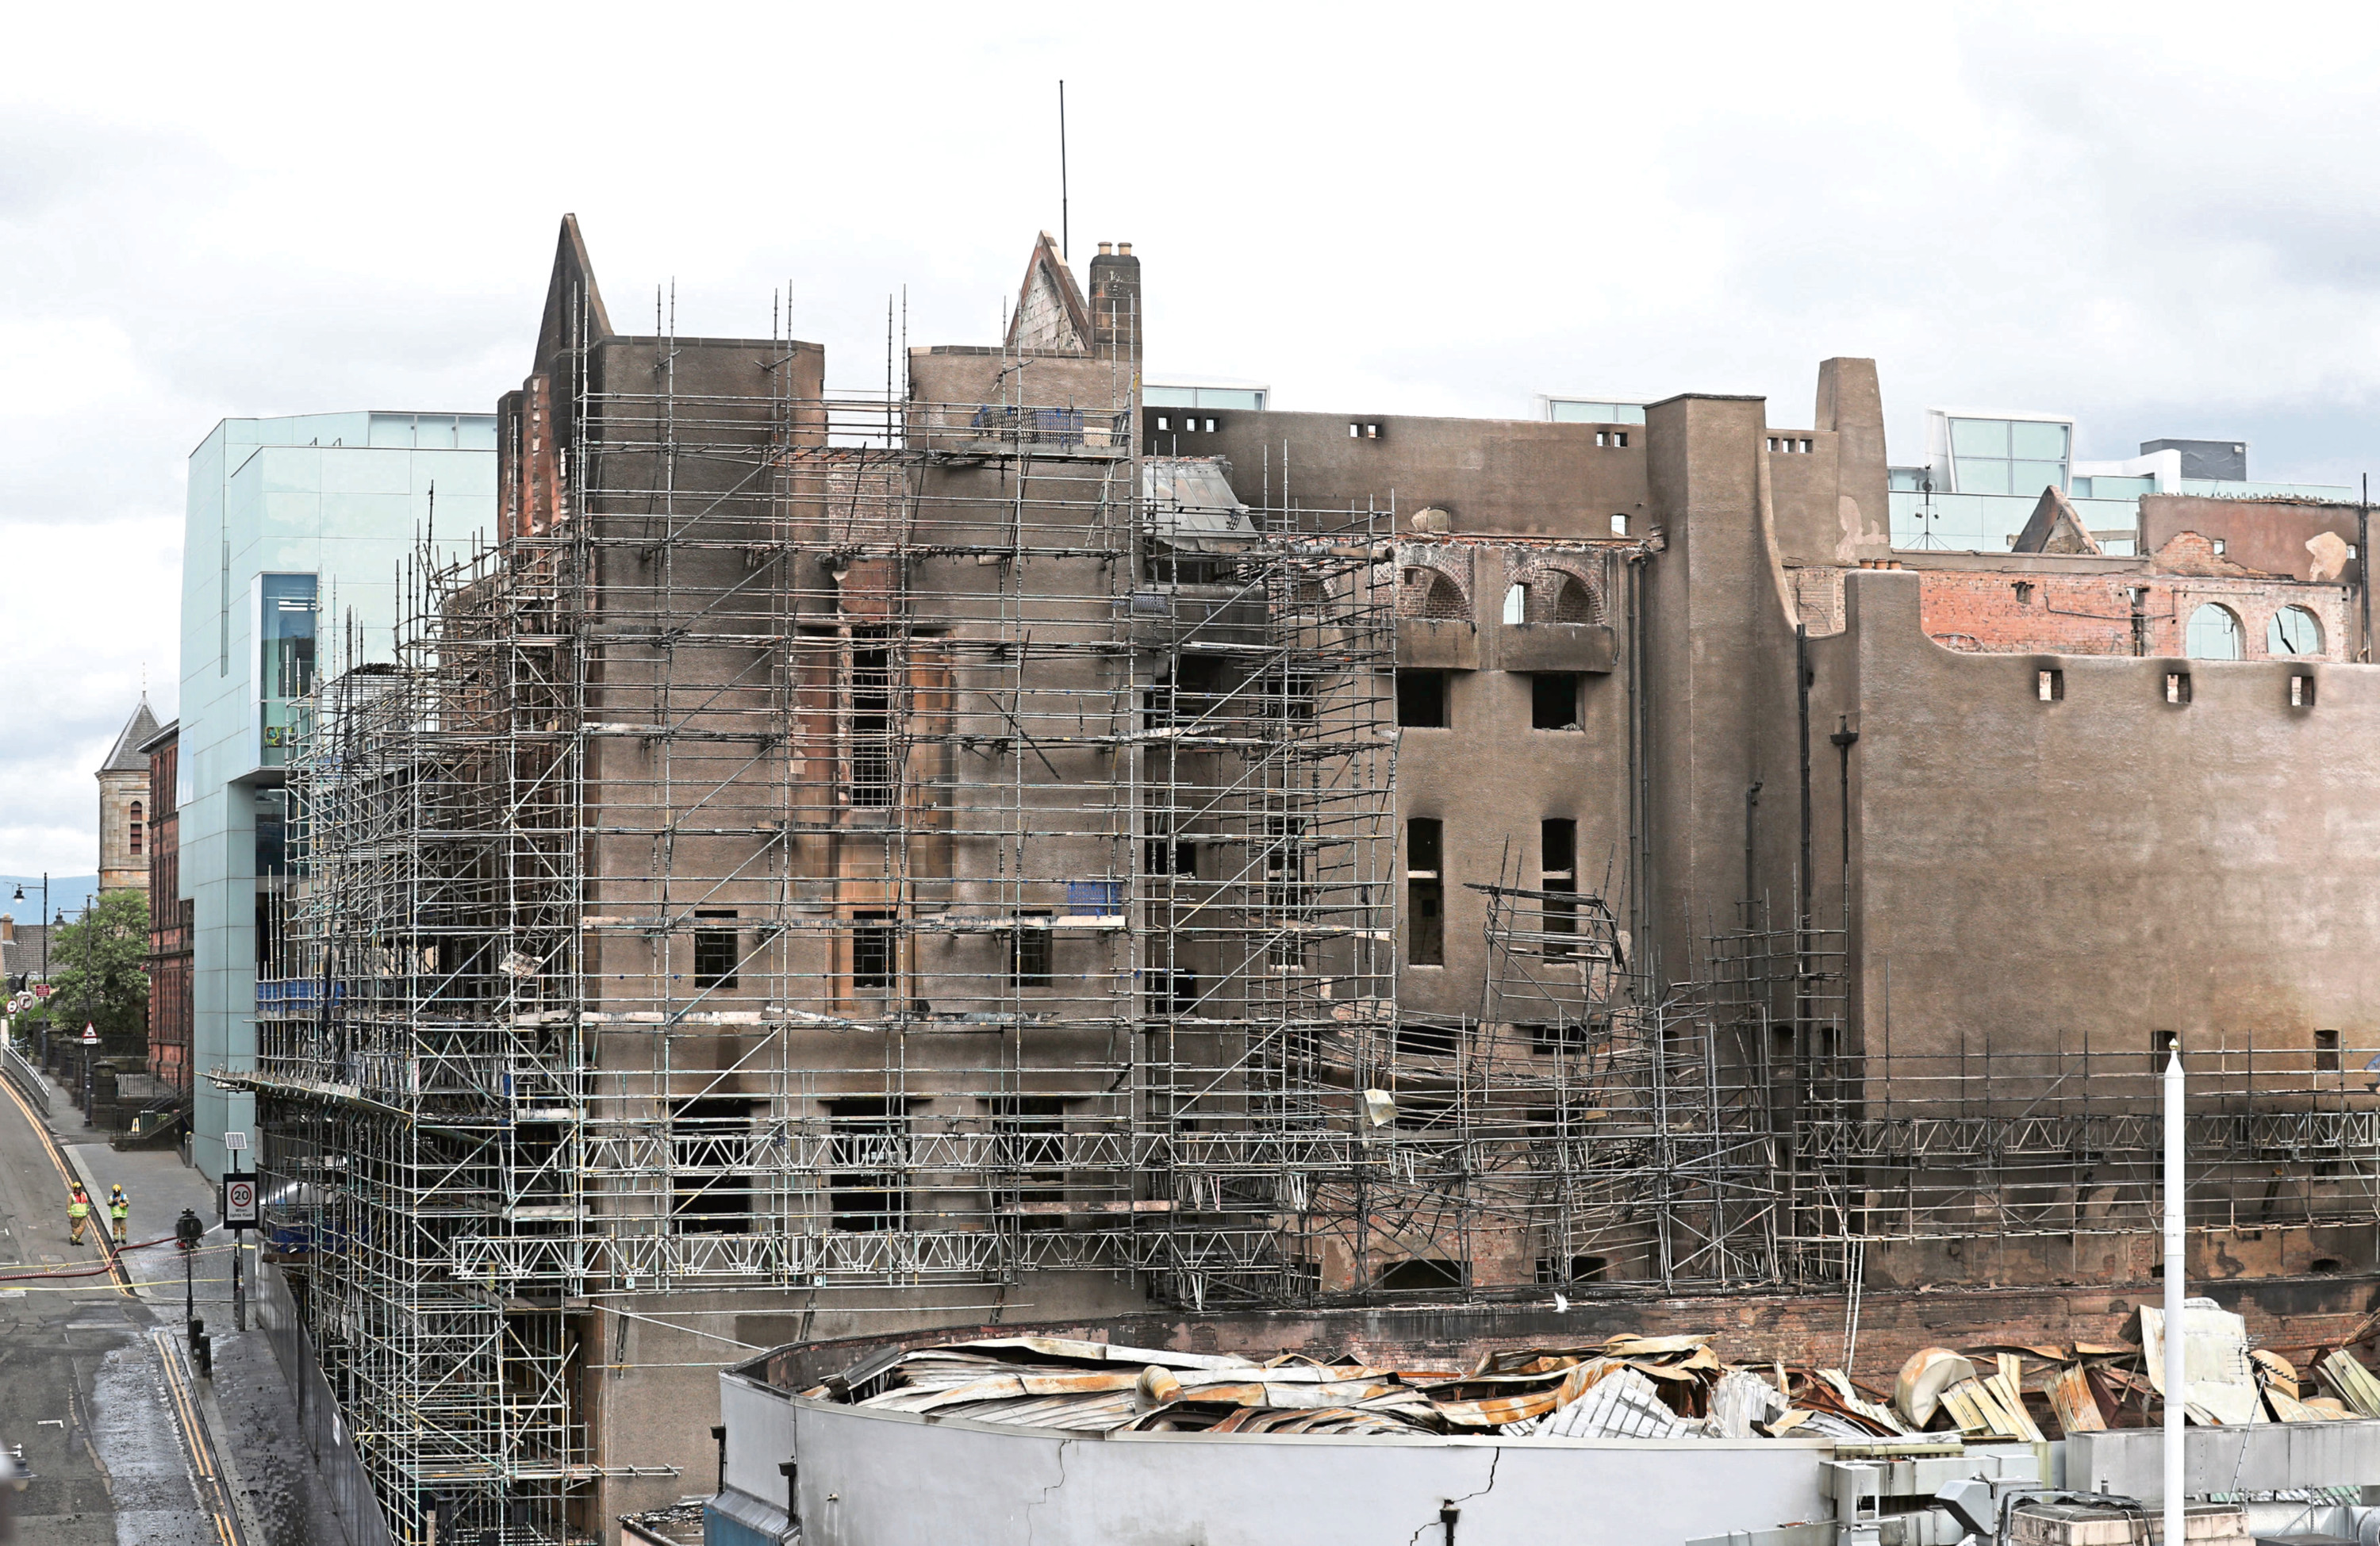 The fire damaged Mackintosh Building